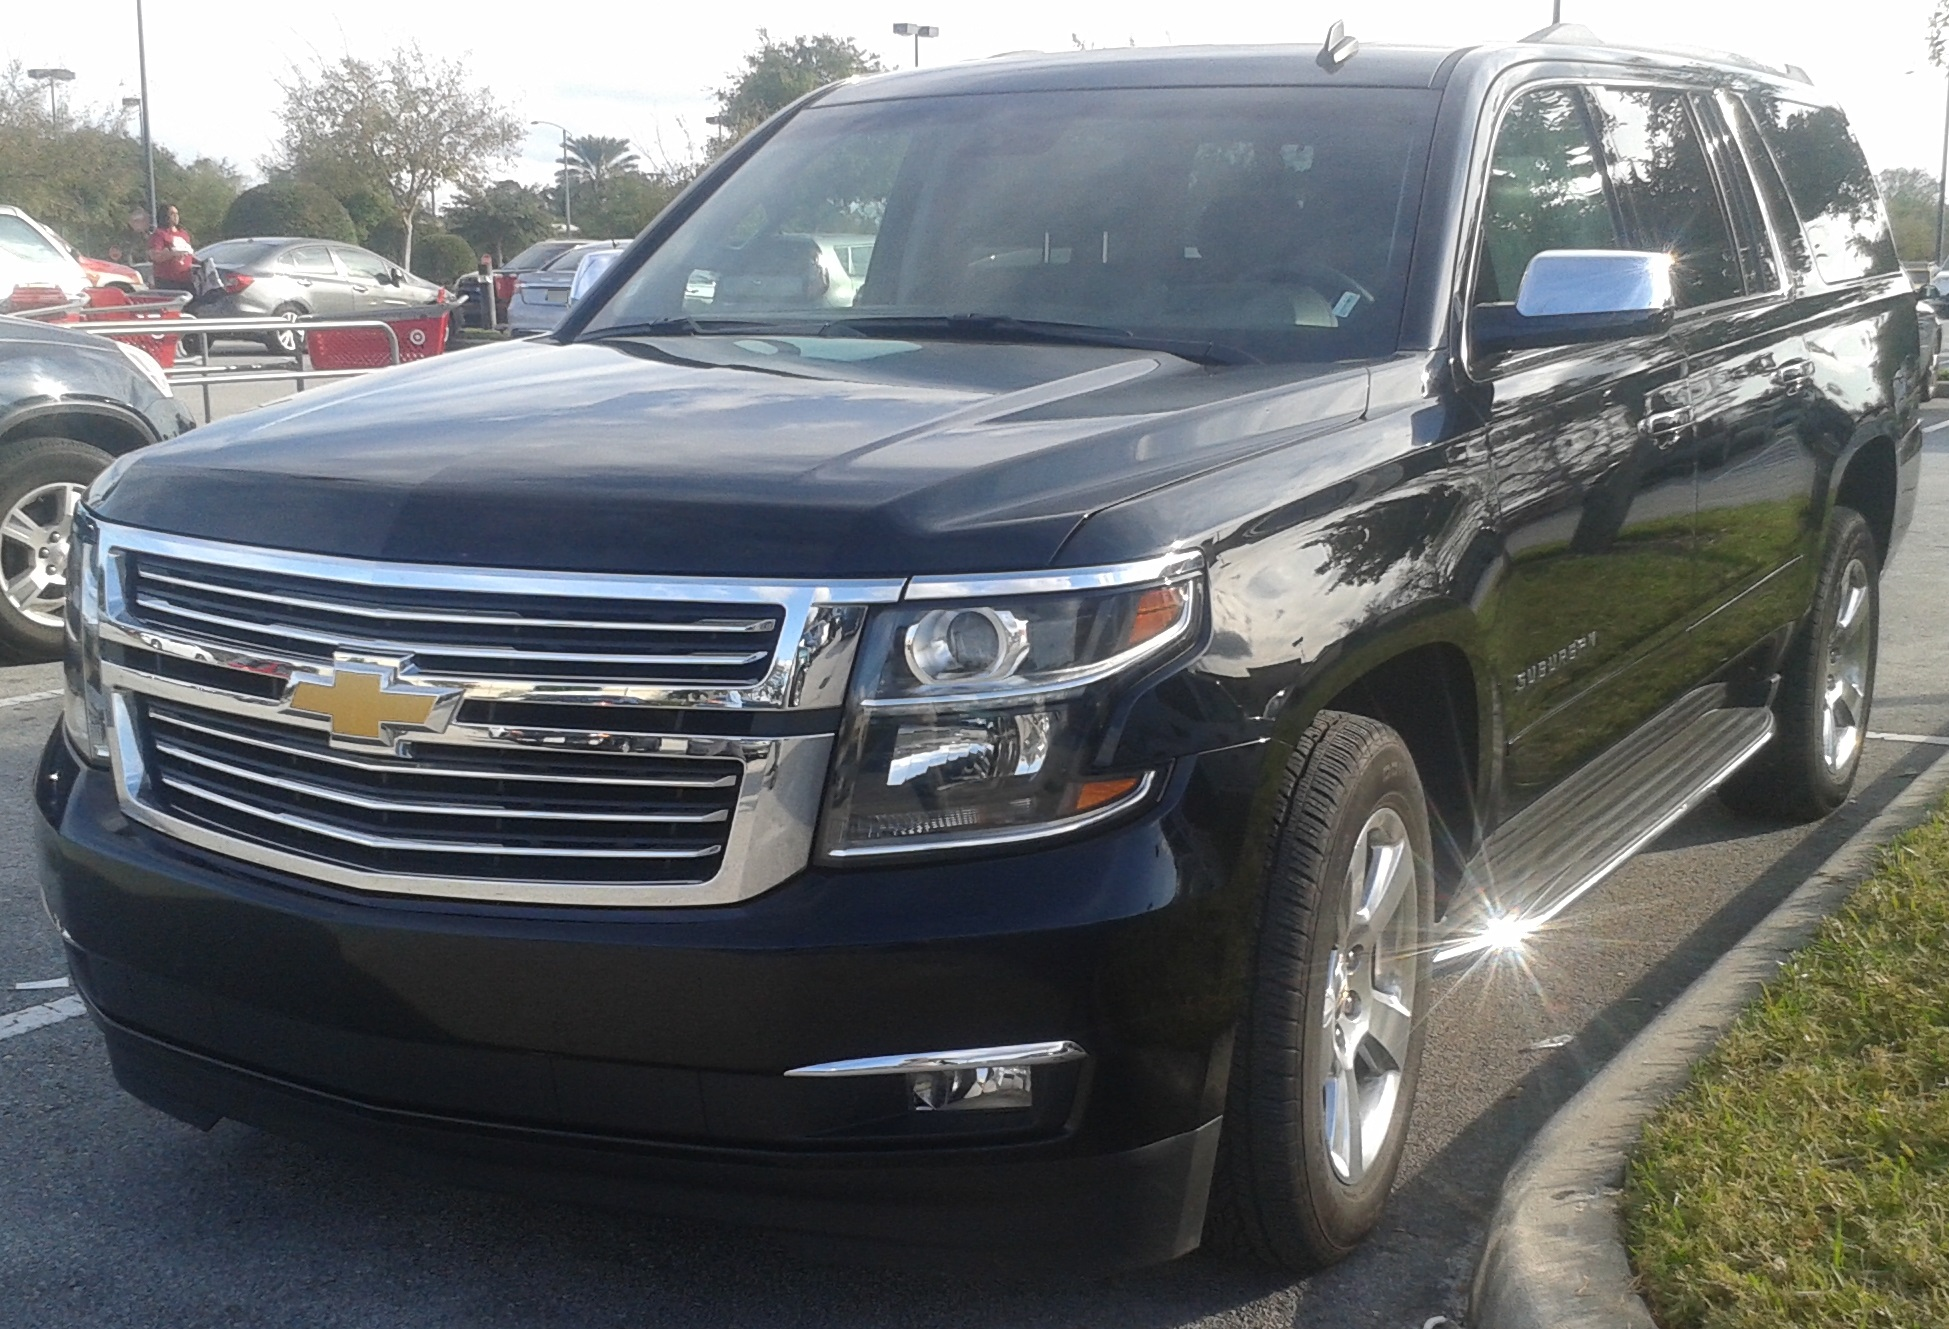 List of Chevrolet vehicles   Wikipedia  15 Chevrolet Suburban LTZ jpg